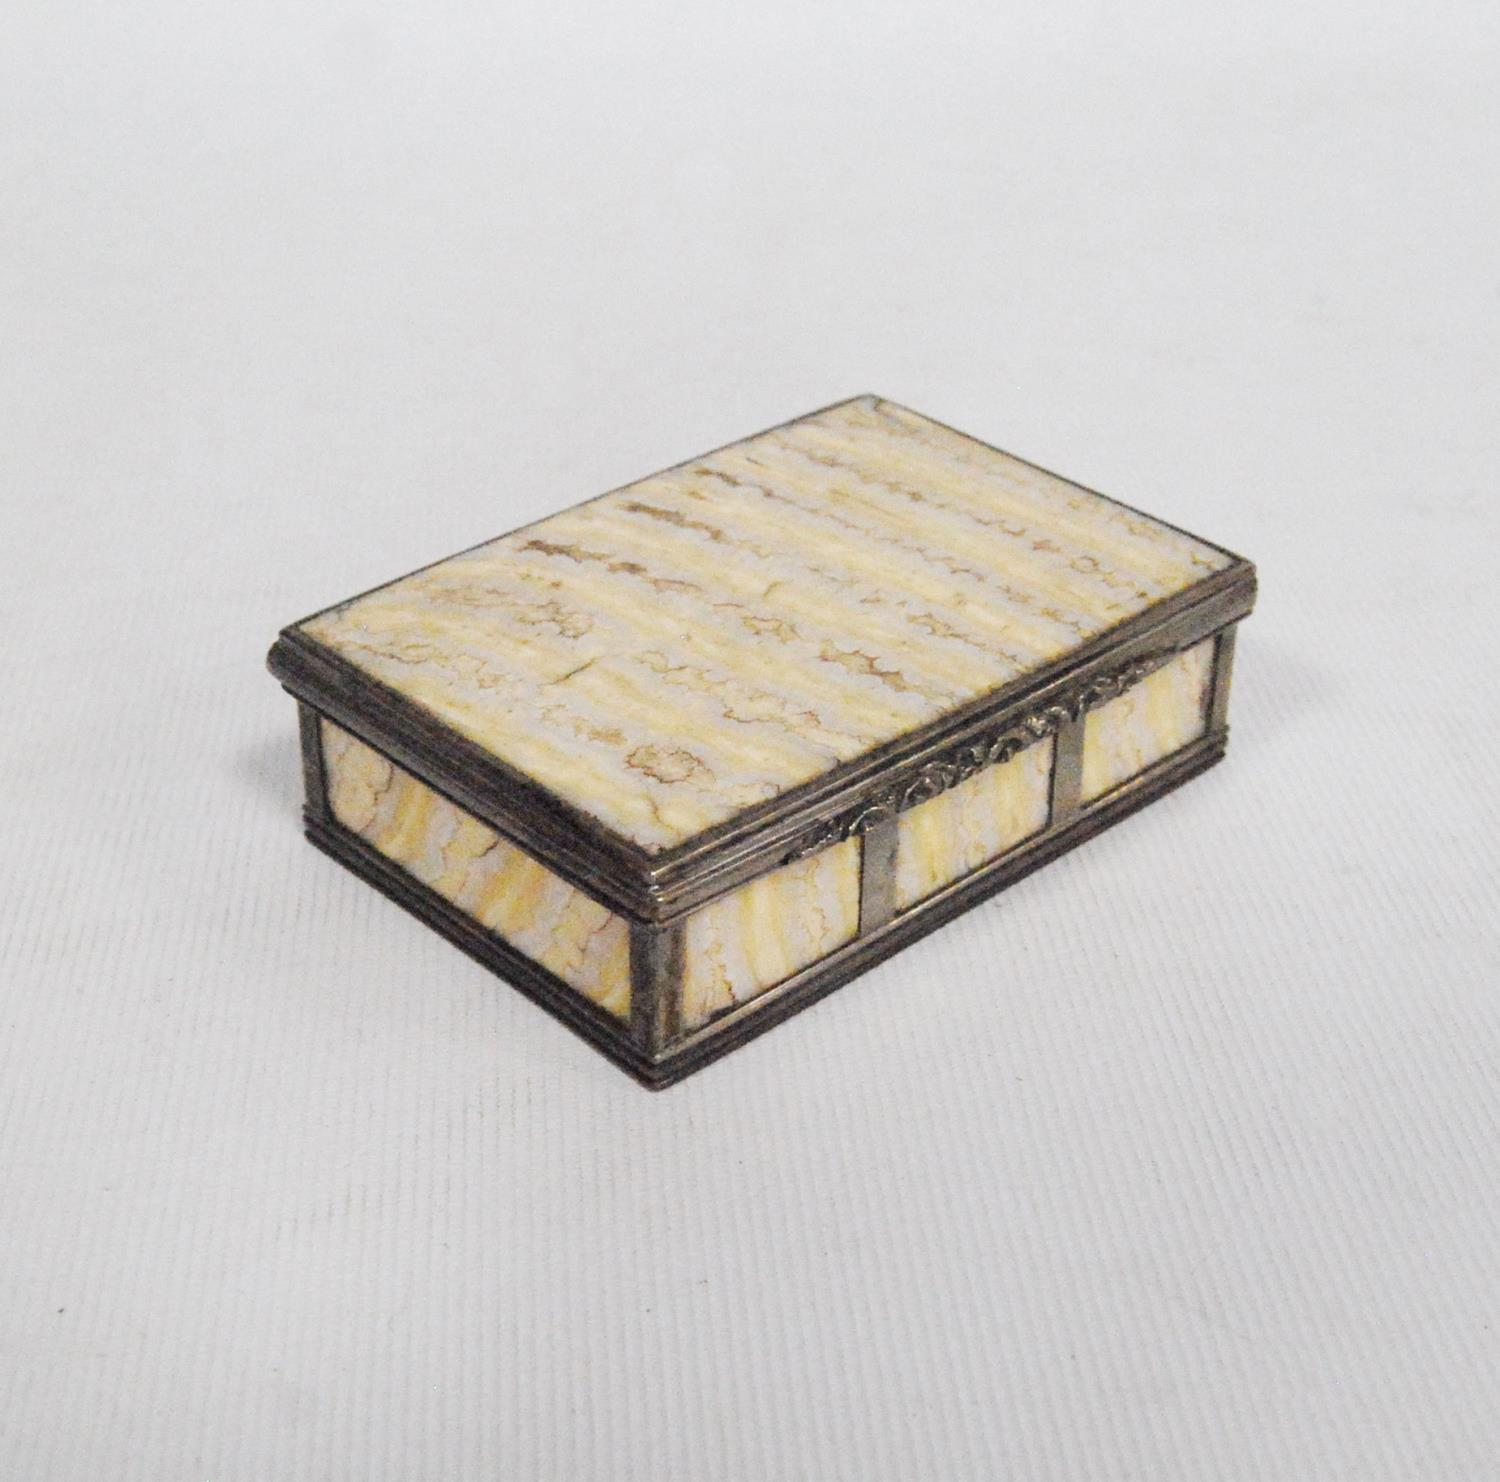 Elephant's tooth box with white metal banding and floral clasp, 7.5cm wide, 2cm high and 5.5cm deep.